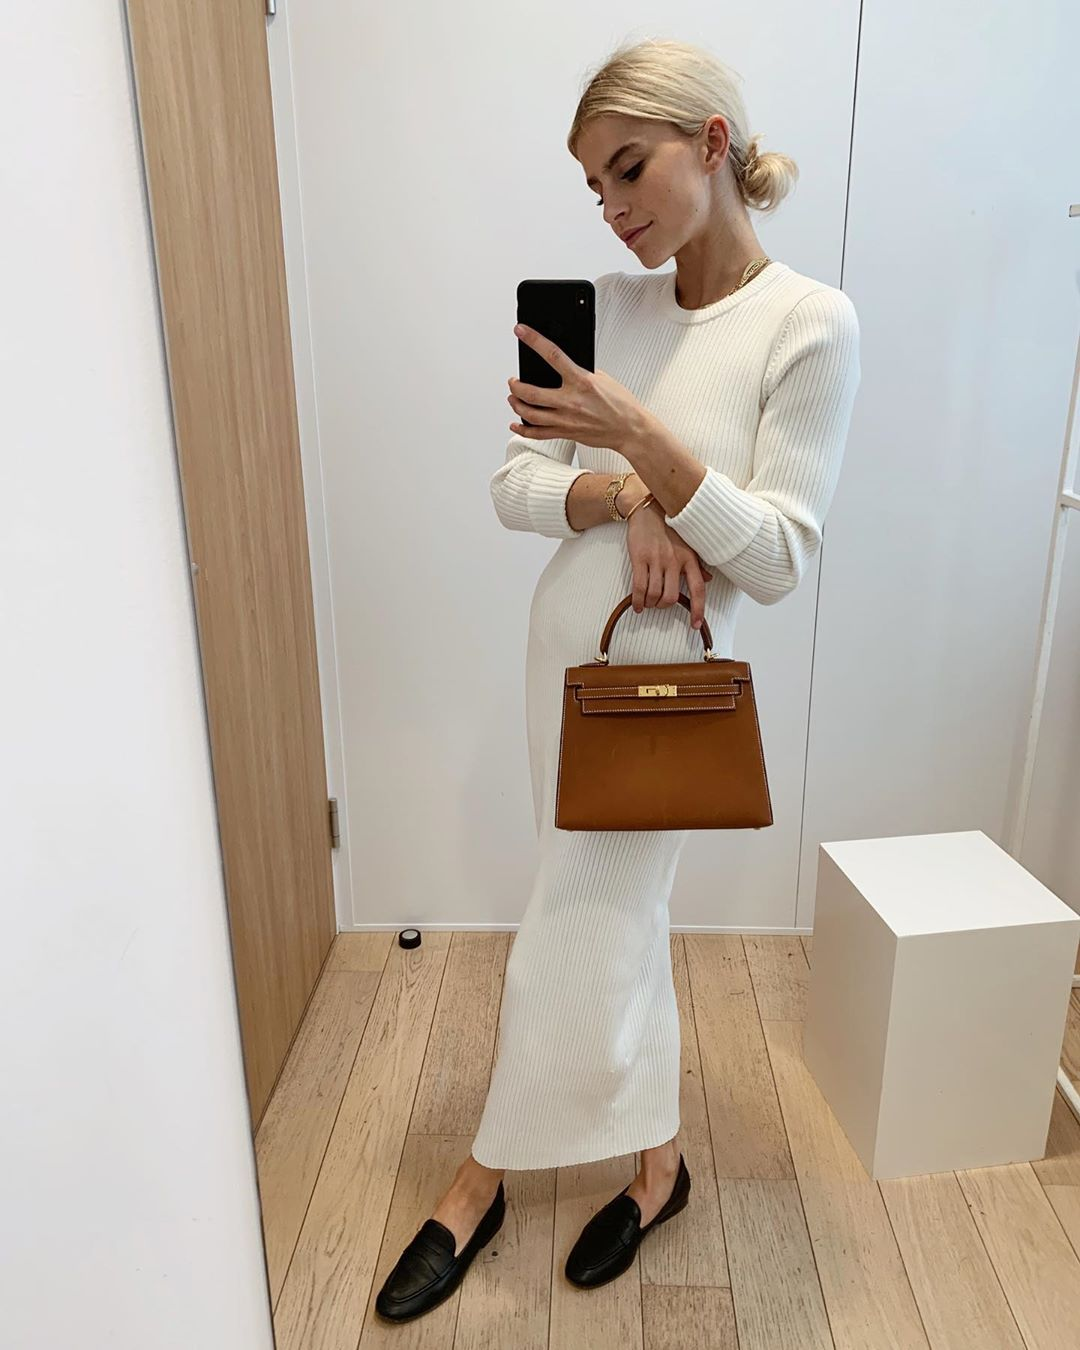 25 Top Handle Bags Cool Girls Swear By — Caroline Daur with a camel Hermes bag, white sweater dress, and black loafers